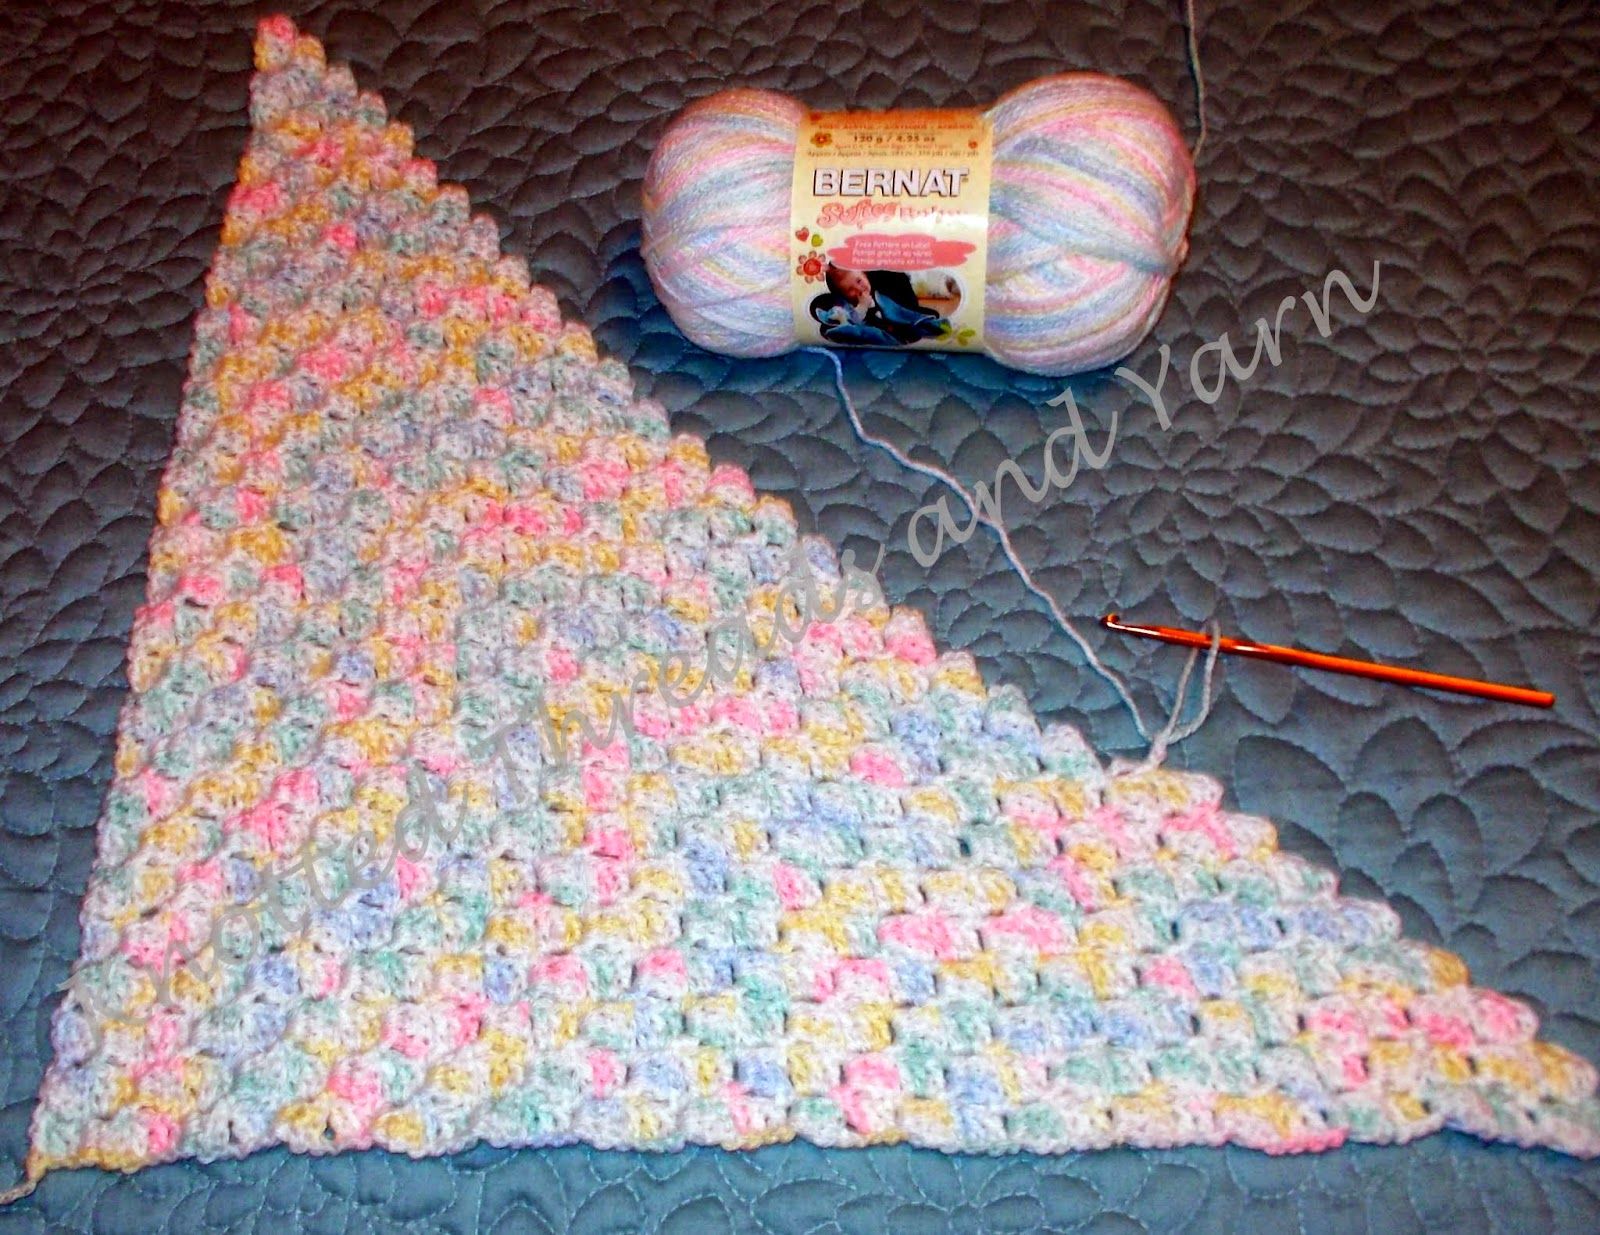 Crochet Pattern For C2c Blanket : Knotted Threads and Yarn: c2c Baby Blanket